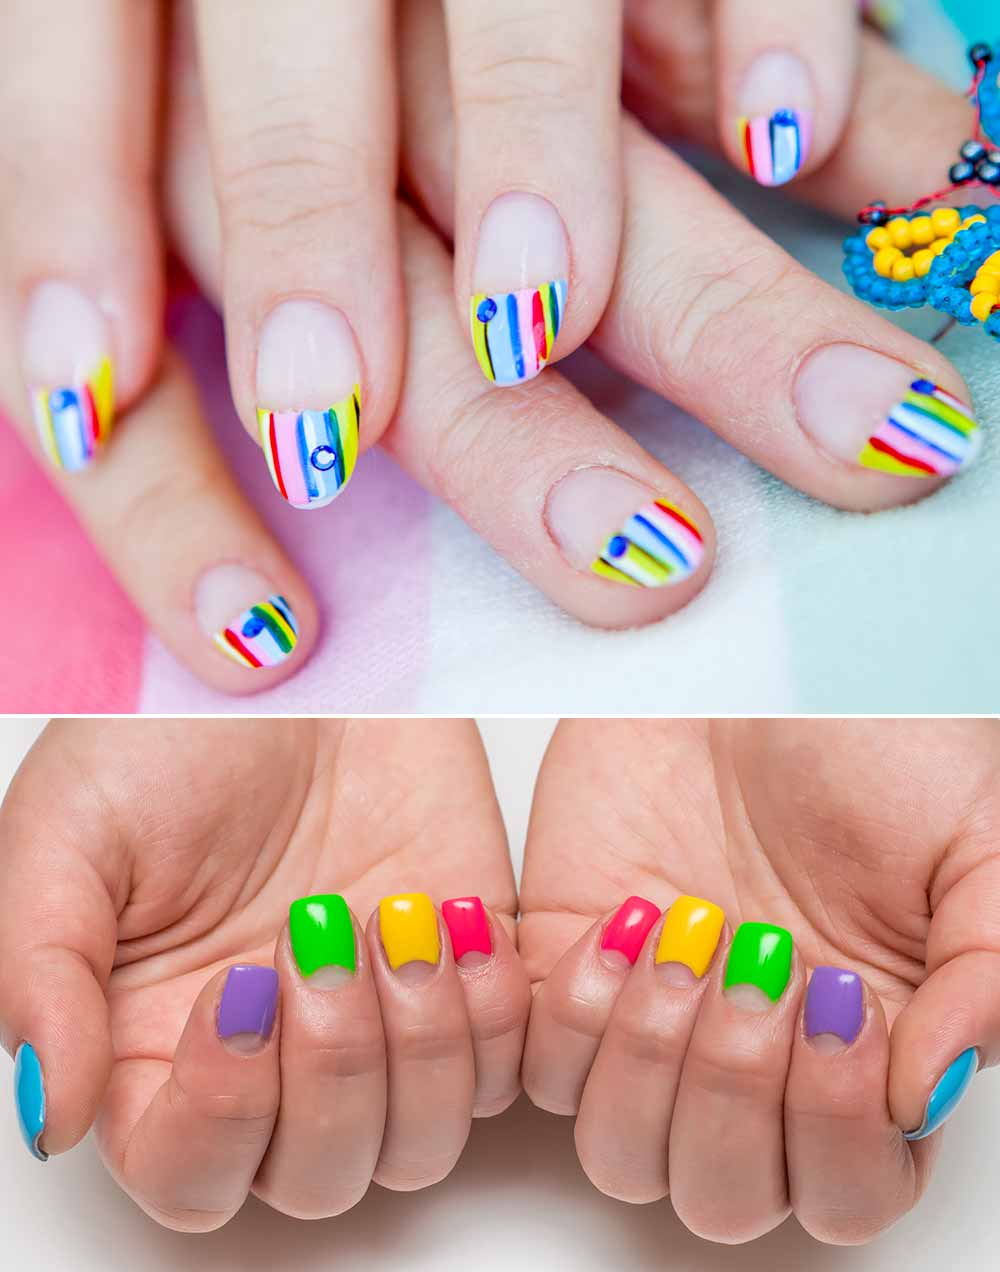 Nail art trends 2018